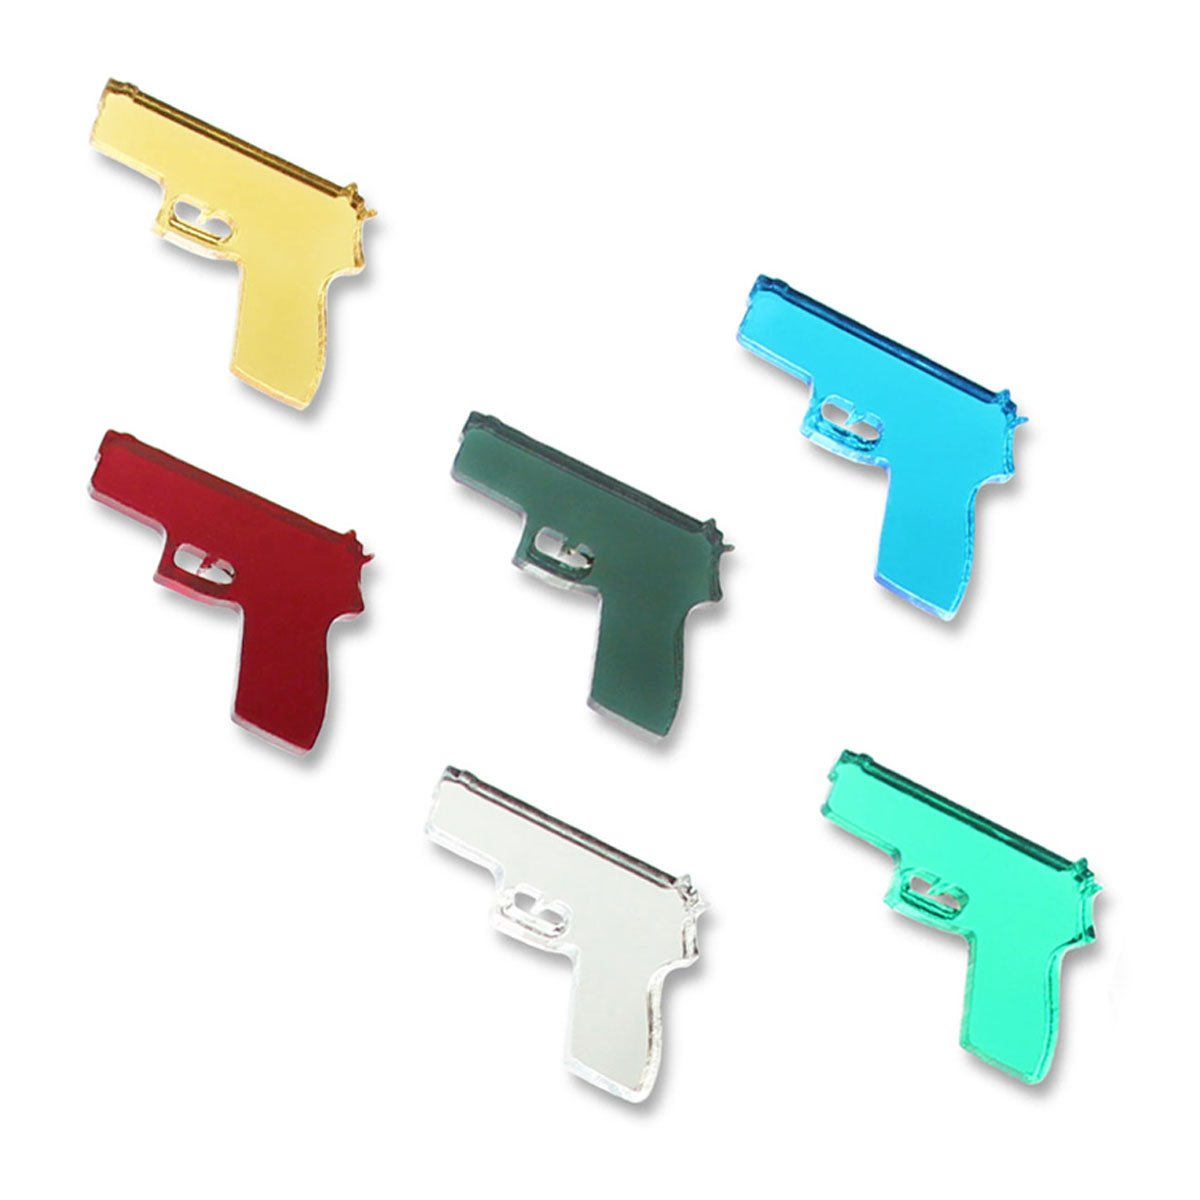 HANDGUNS Magnetic Wine Glass Charms (Set of 6) by Claim Your Glass - Premium Drink Markers for Wine, Champagne, Beer, Cocktail Glasses - Includes Storage Case + Spare Magnet by Claim Your Glass (Image #3)